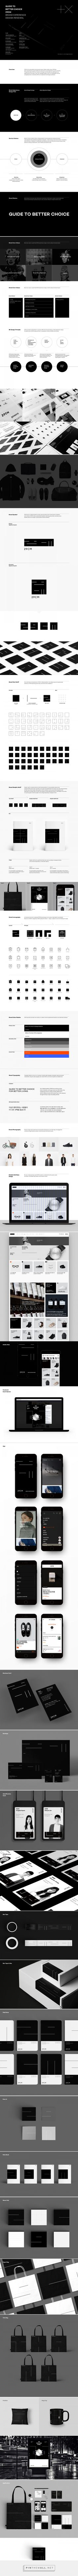 29CM Brand eXperience Design Renewal on Behance... - a grouped images picture - Pin Them All